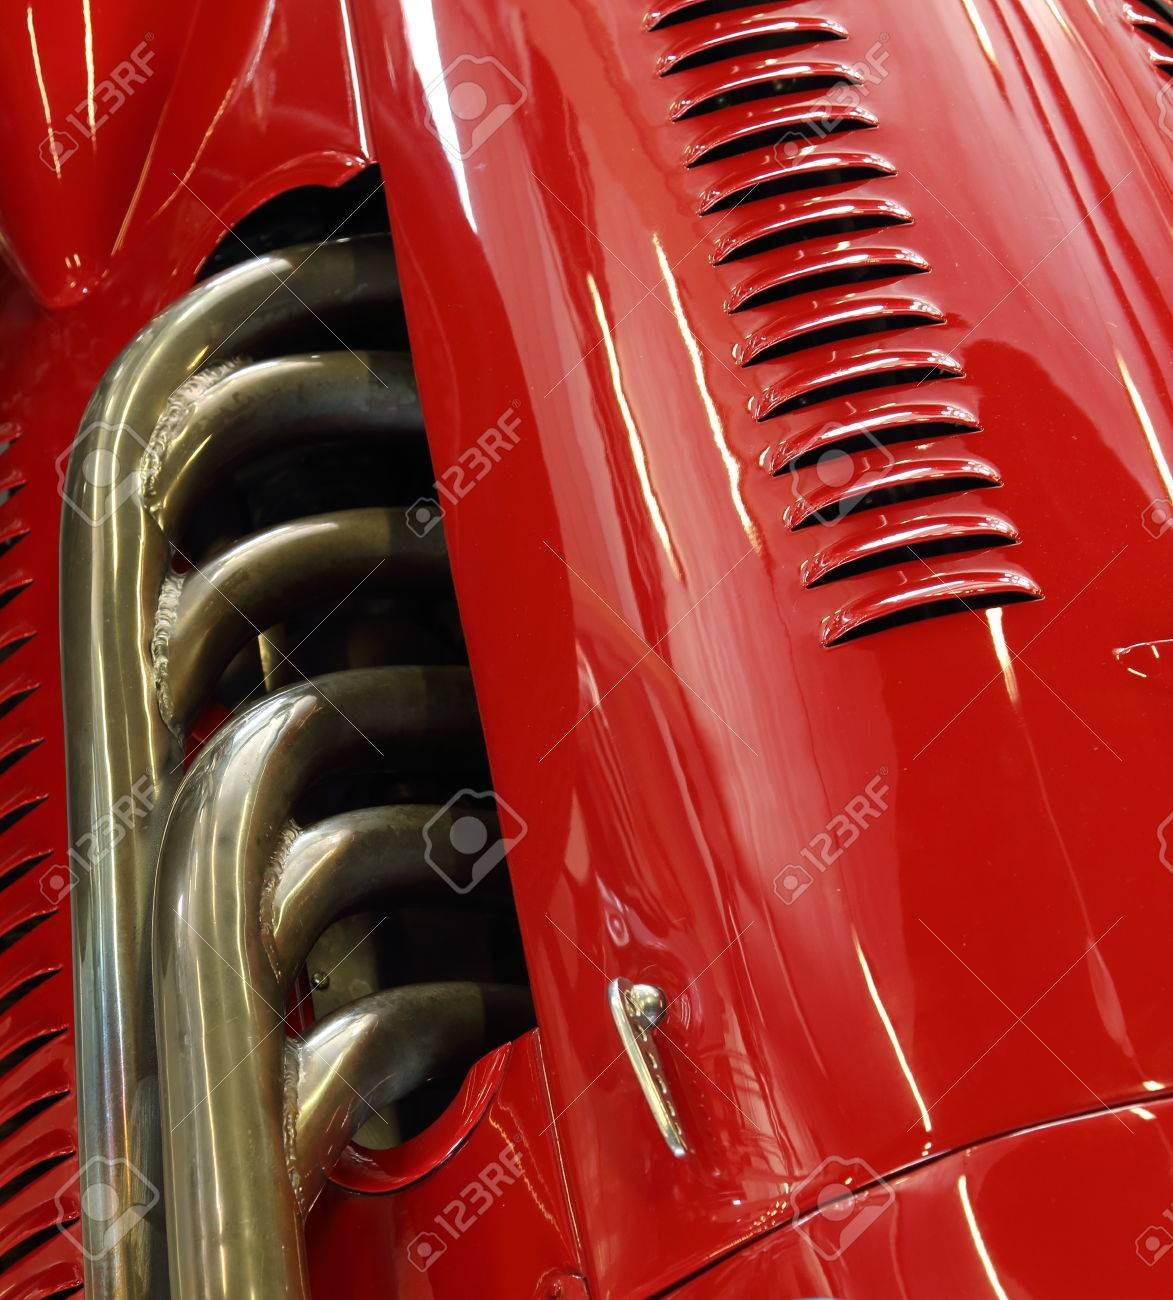 closeup of the exhaust and bodywork of a red classic racing car